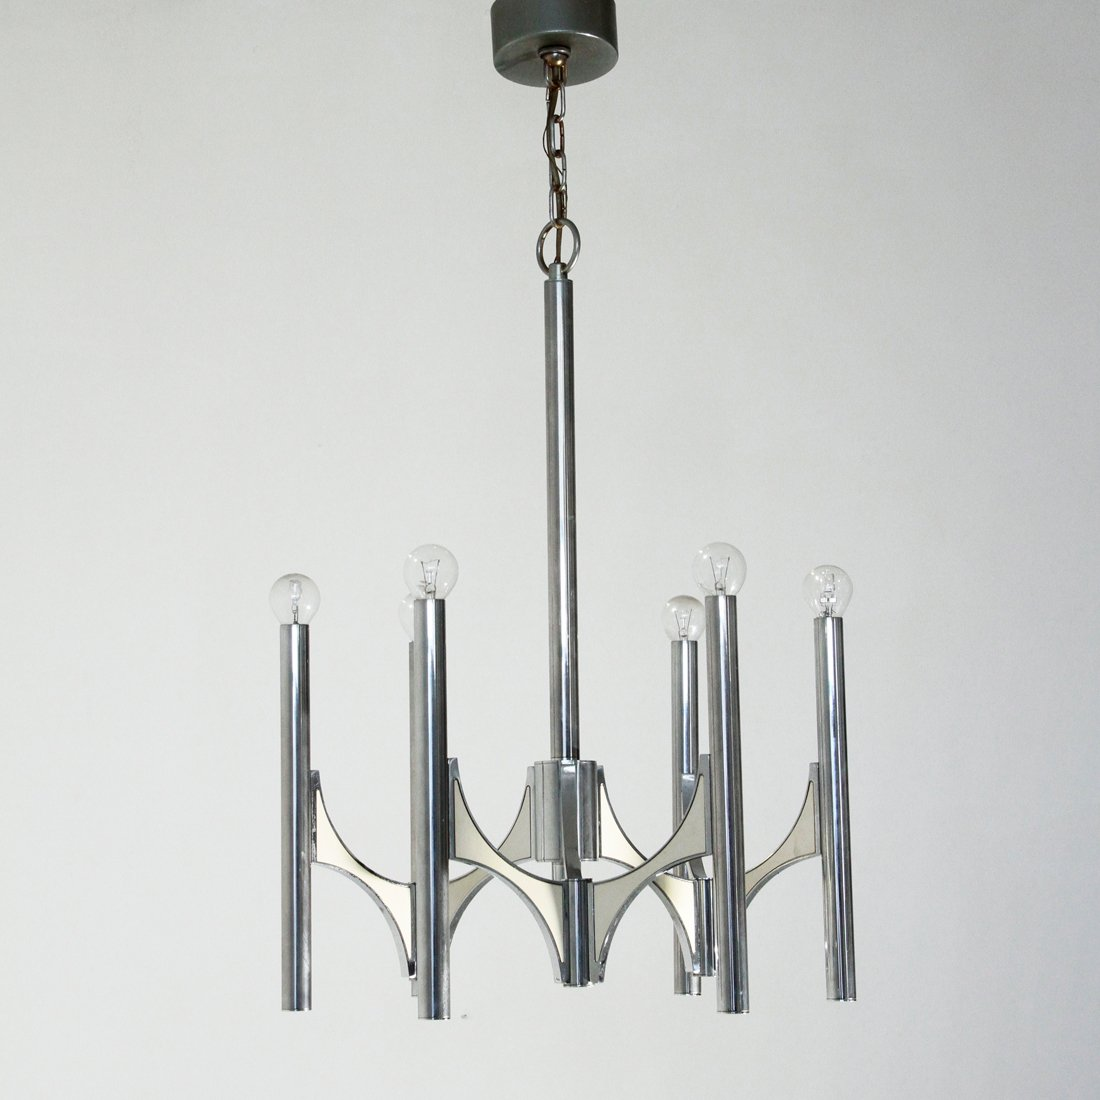 Six light chandelier from sciolari 1970s for sale at pamono six light chandelier from sciolari 1970s aloadofball Images